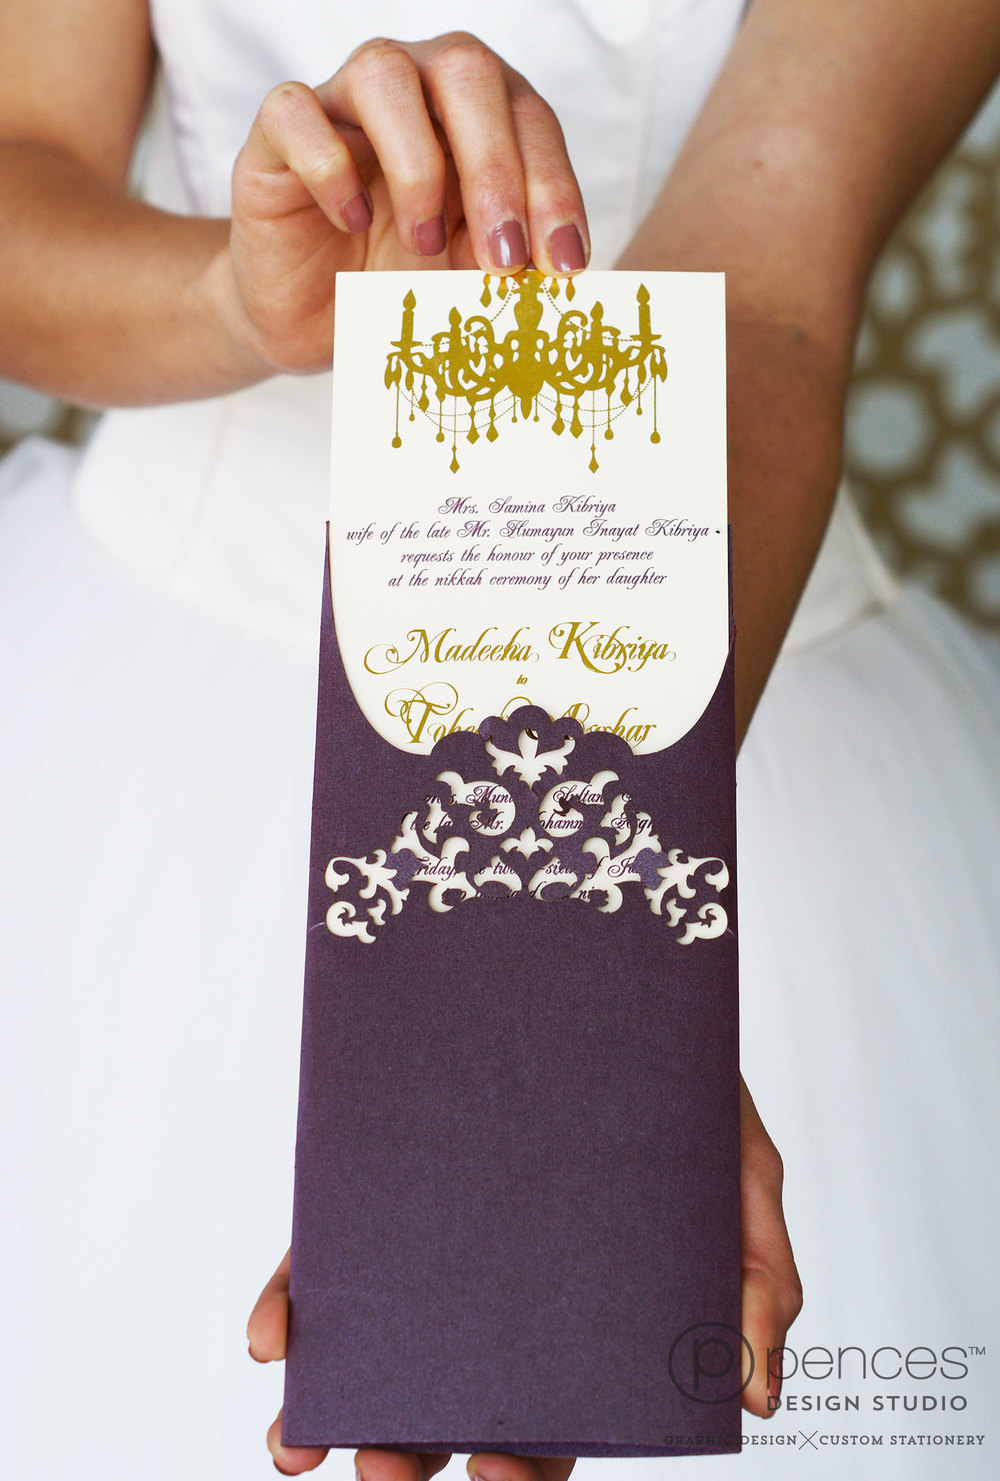 pences-invite40-lasercut-goldfoil.jpg